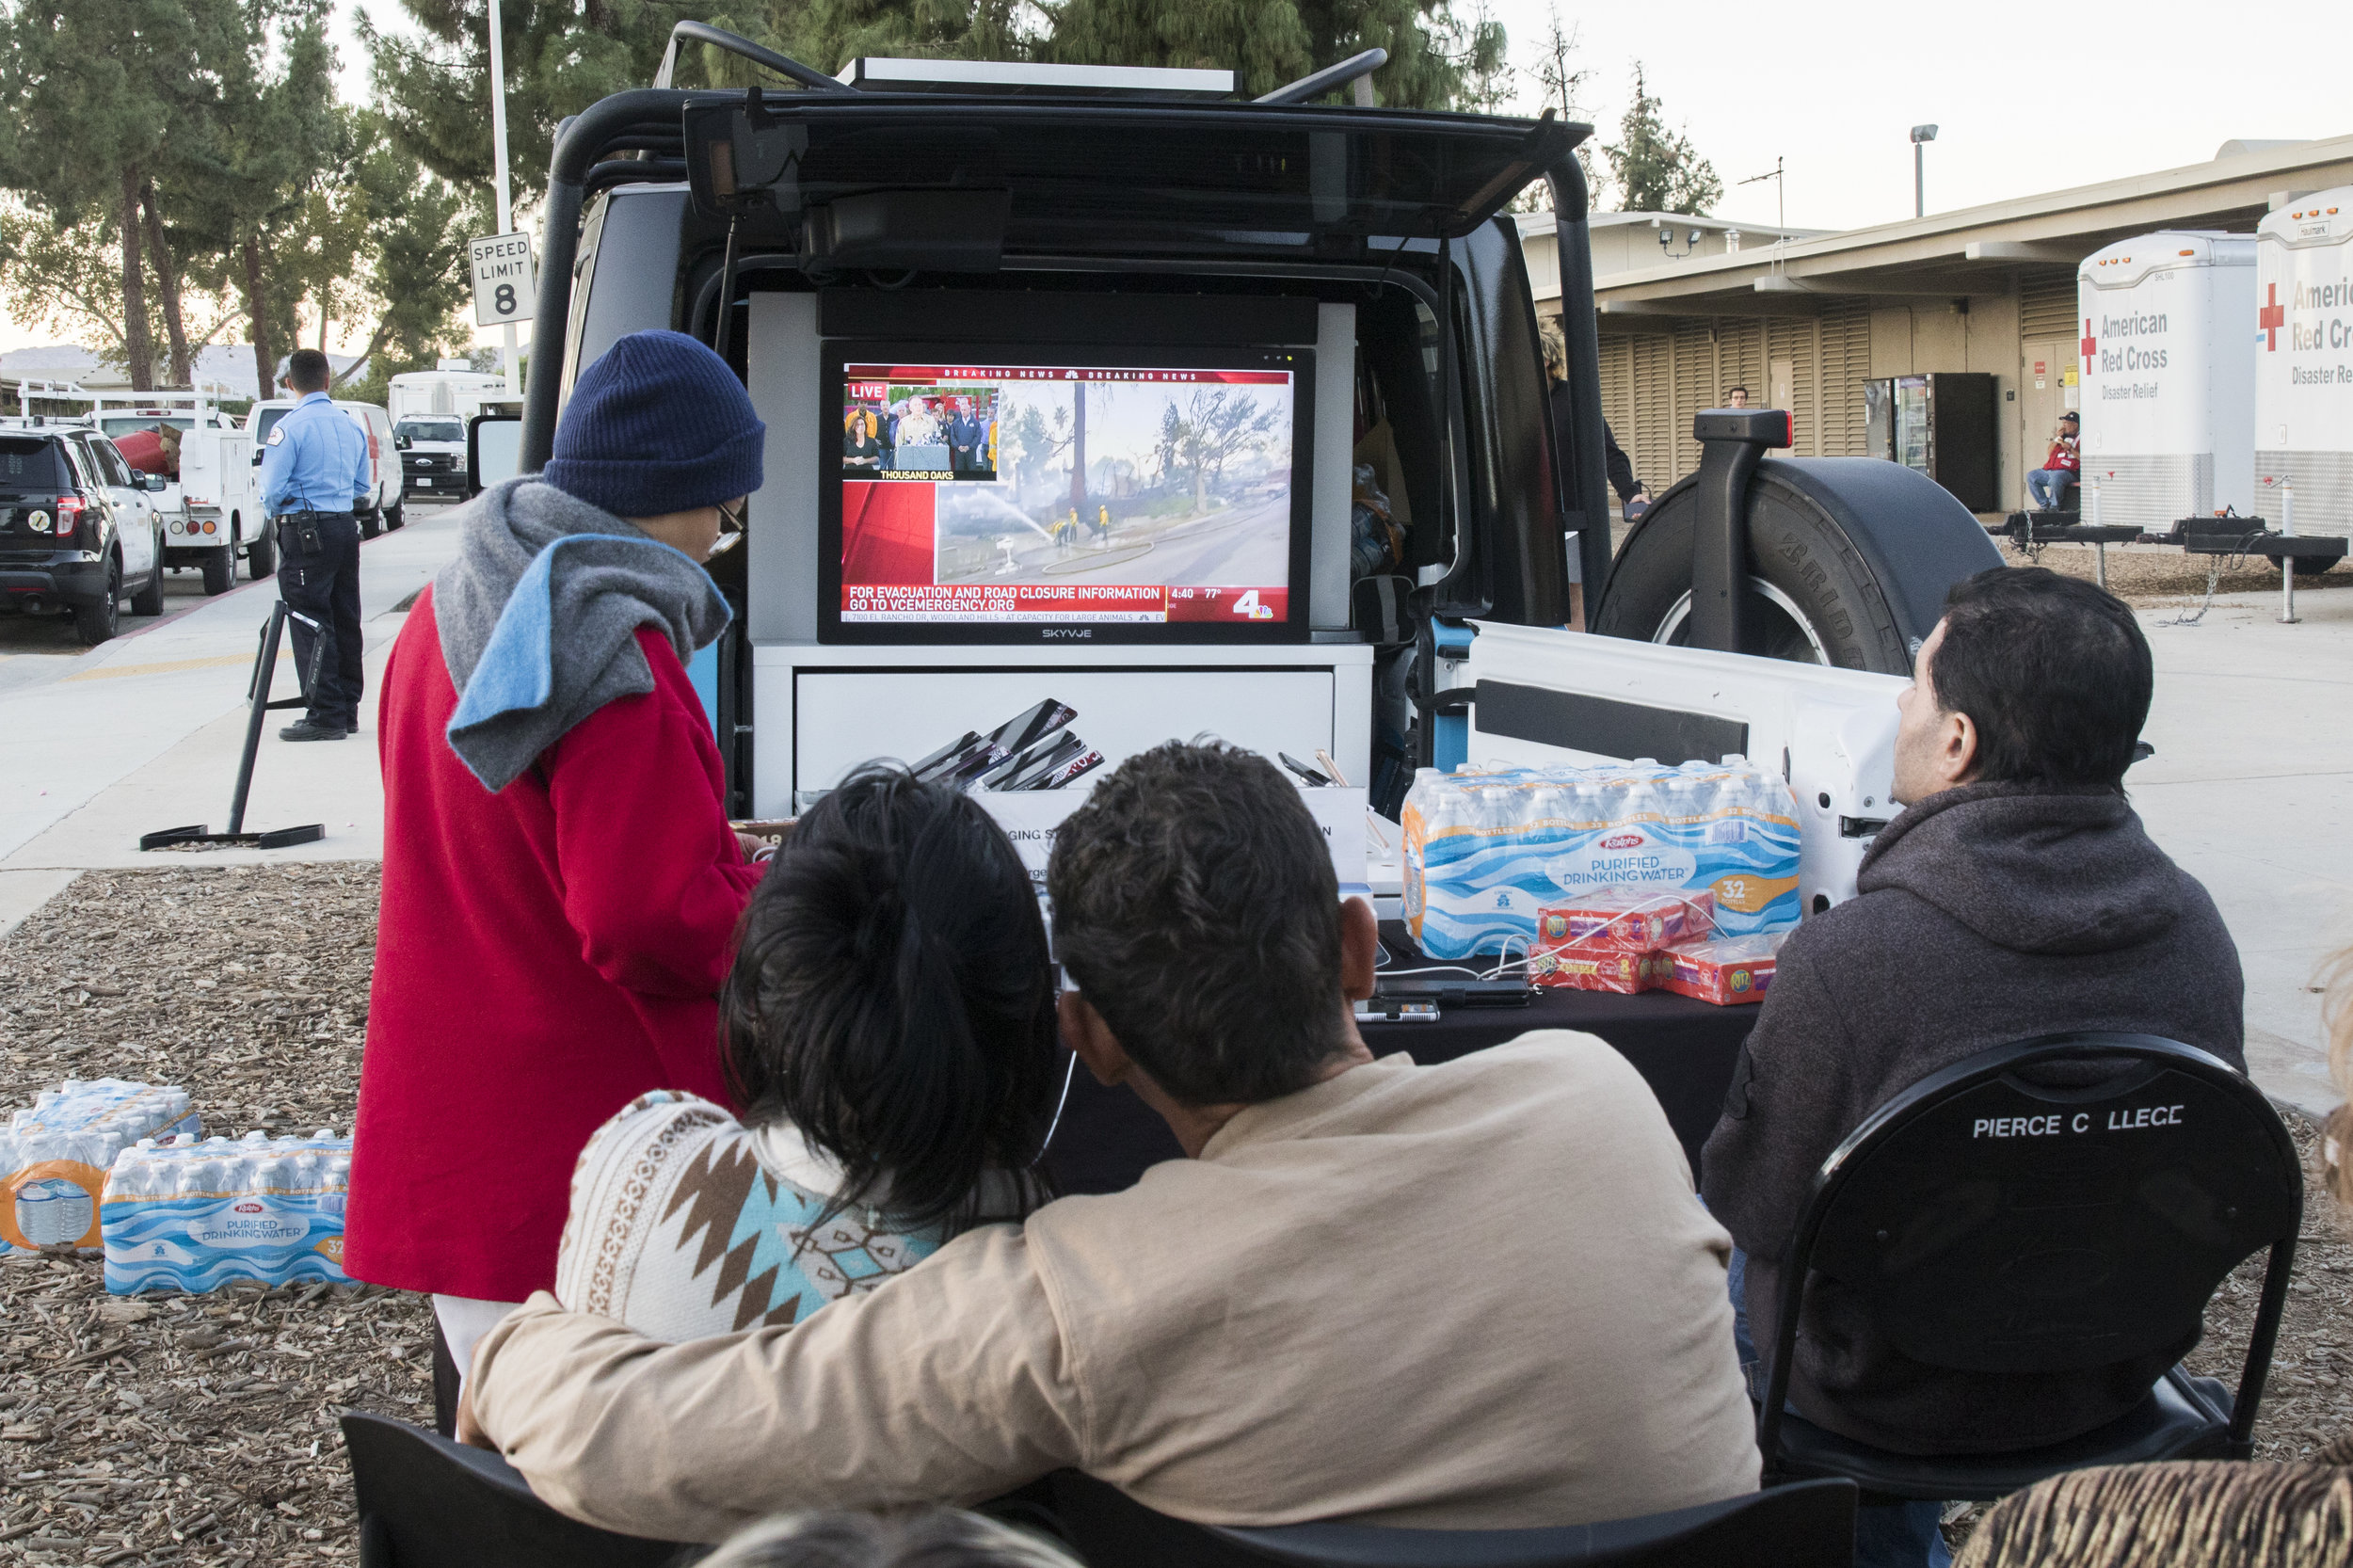 People at an evacuation center located at Pierce College in Woodland HIlls, California watch live news to get updates on their homes on November 9, 2018. (Zane Meyer-Thornton/Corsair Photo)